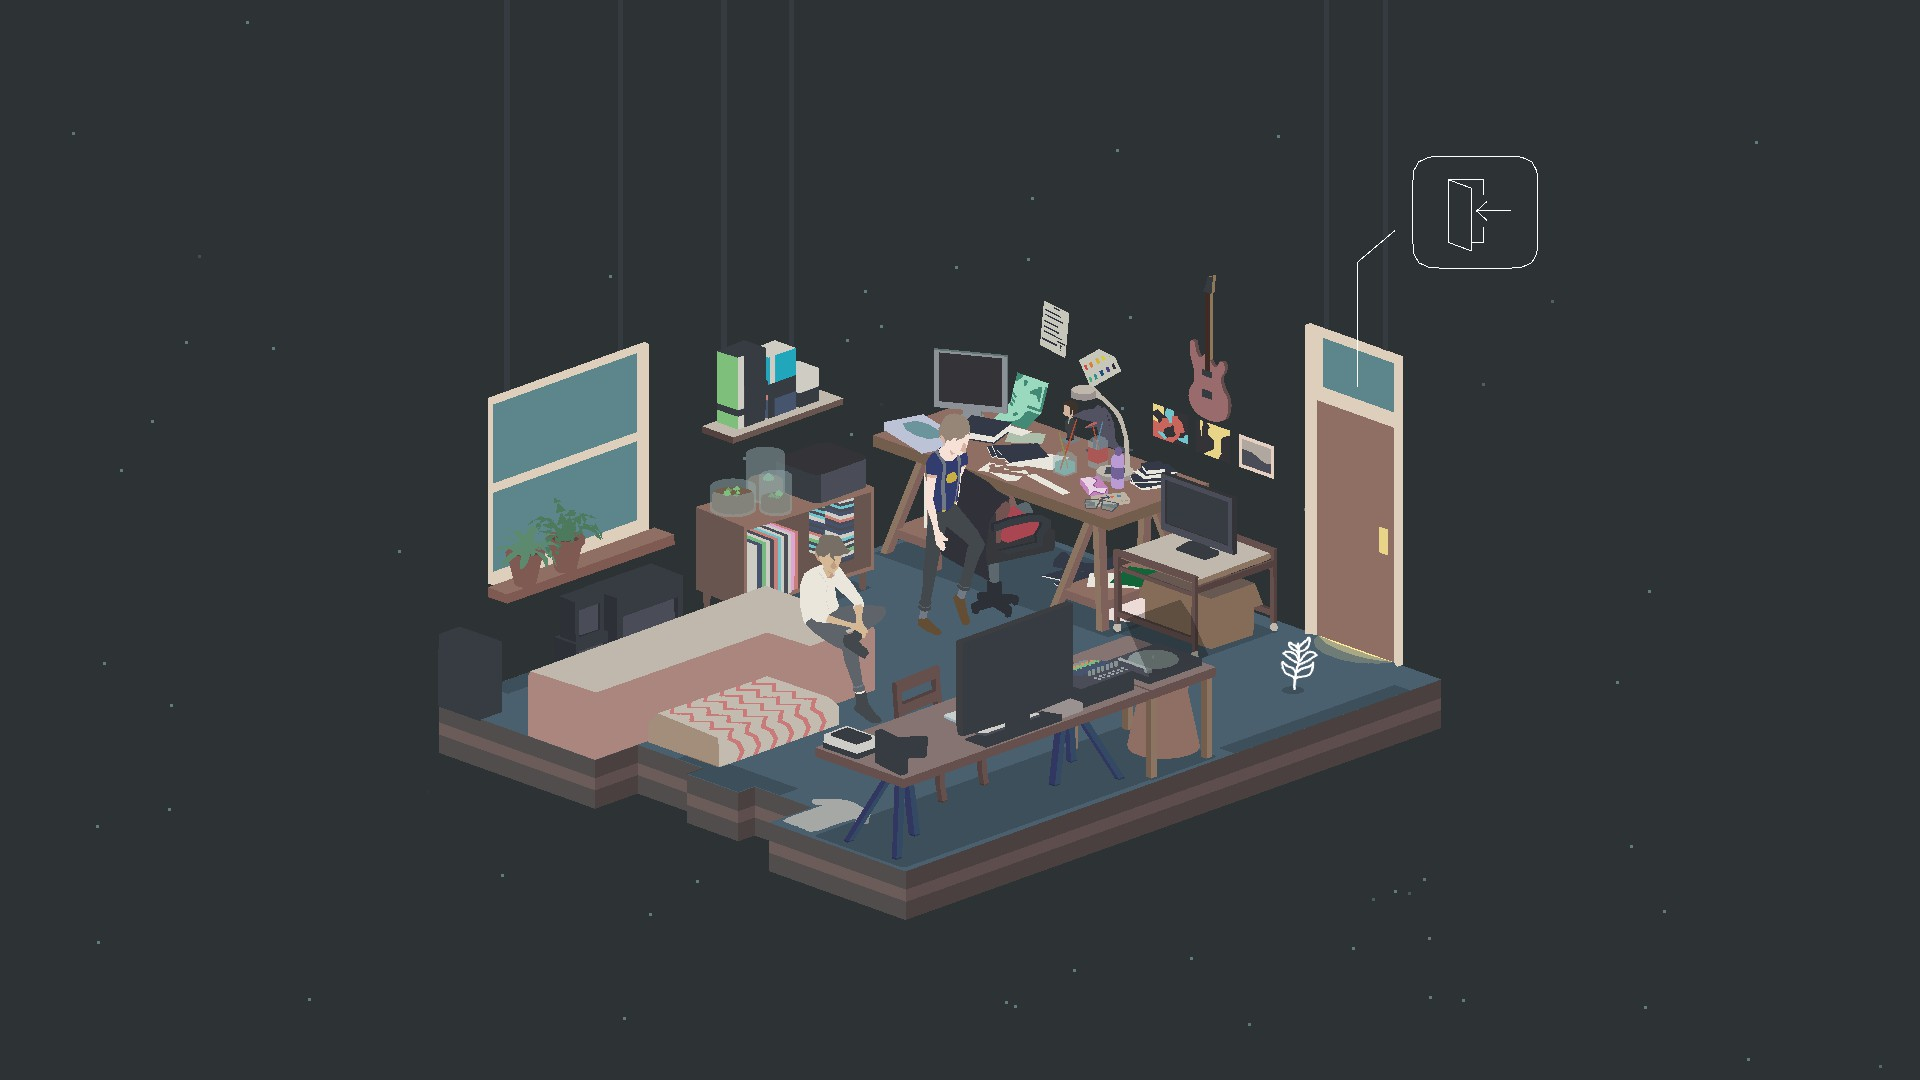 A student's room cluttered with desks and screens